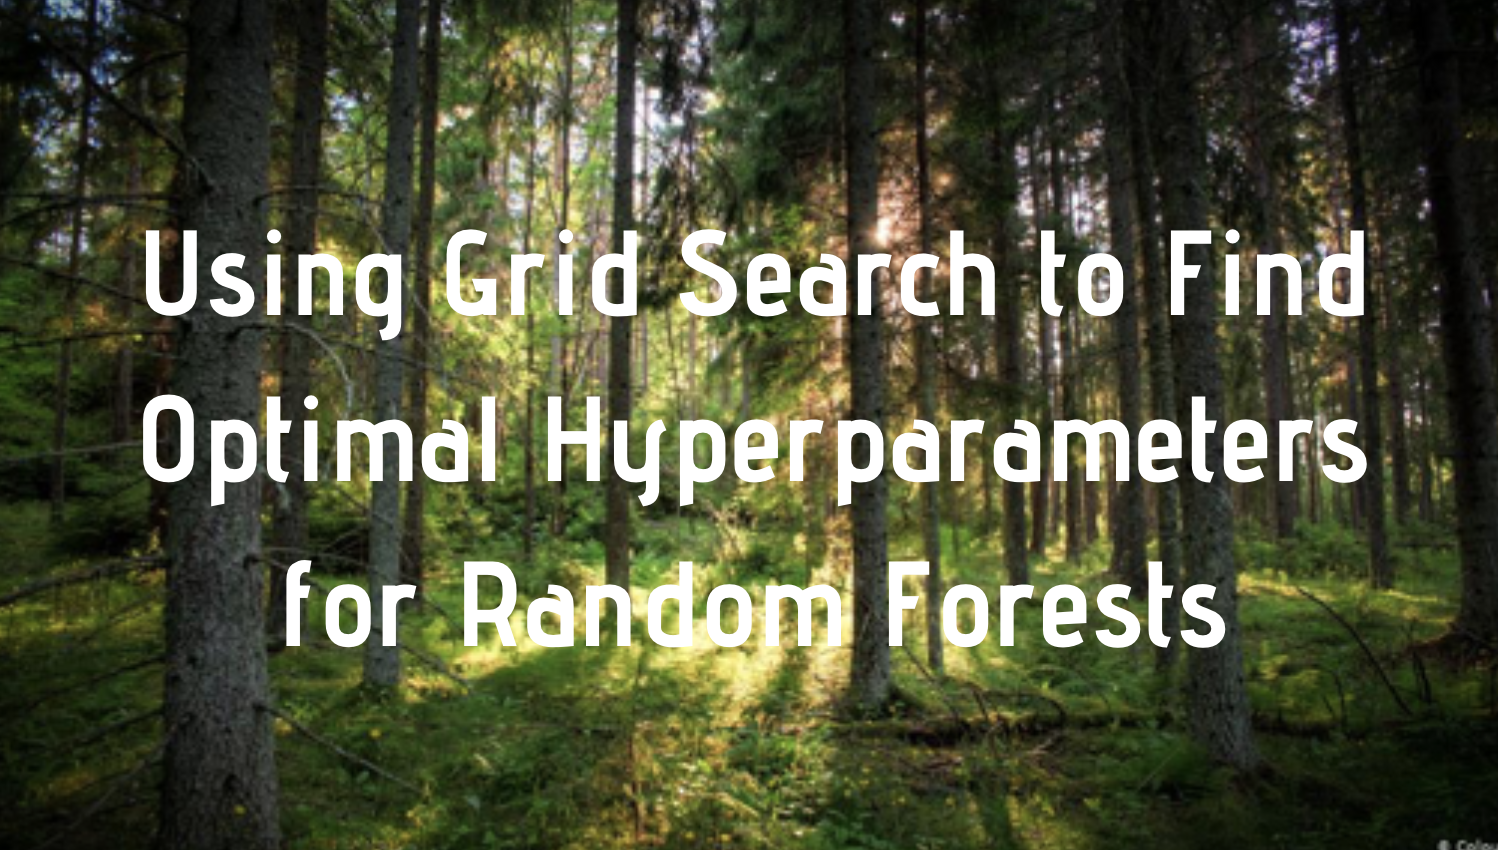 Using Grid Search to Find Optimal Hyperparameters for Random Forests